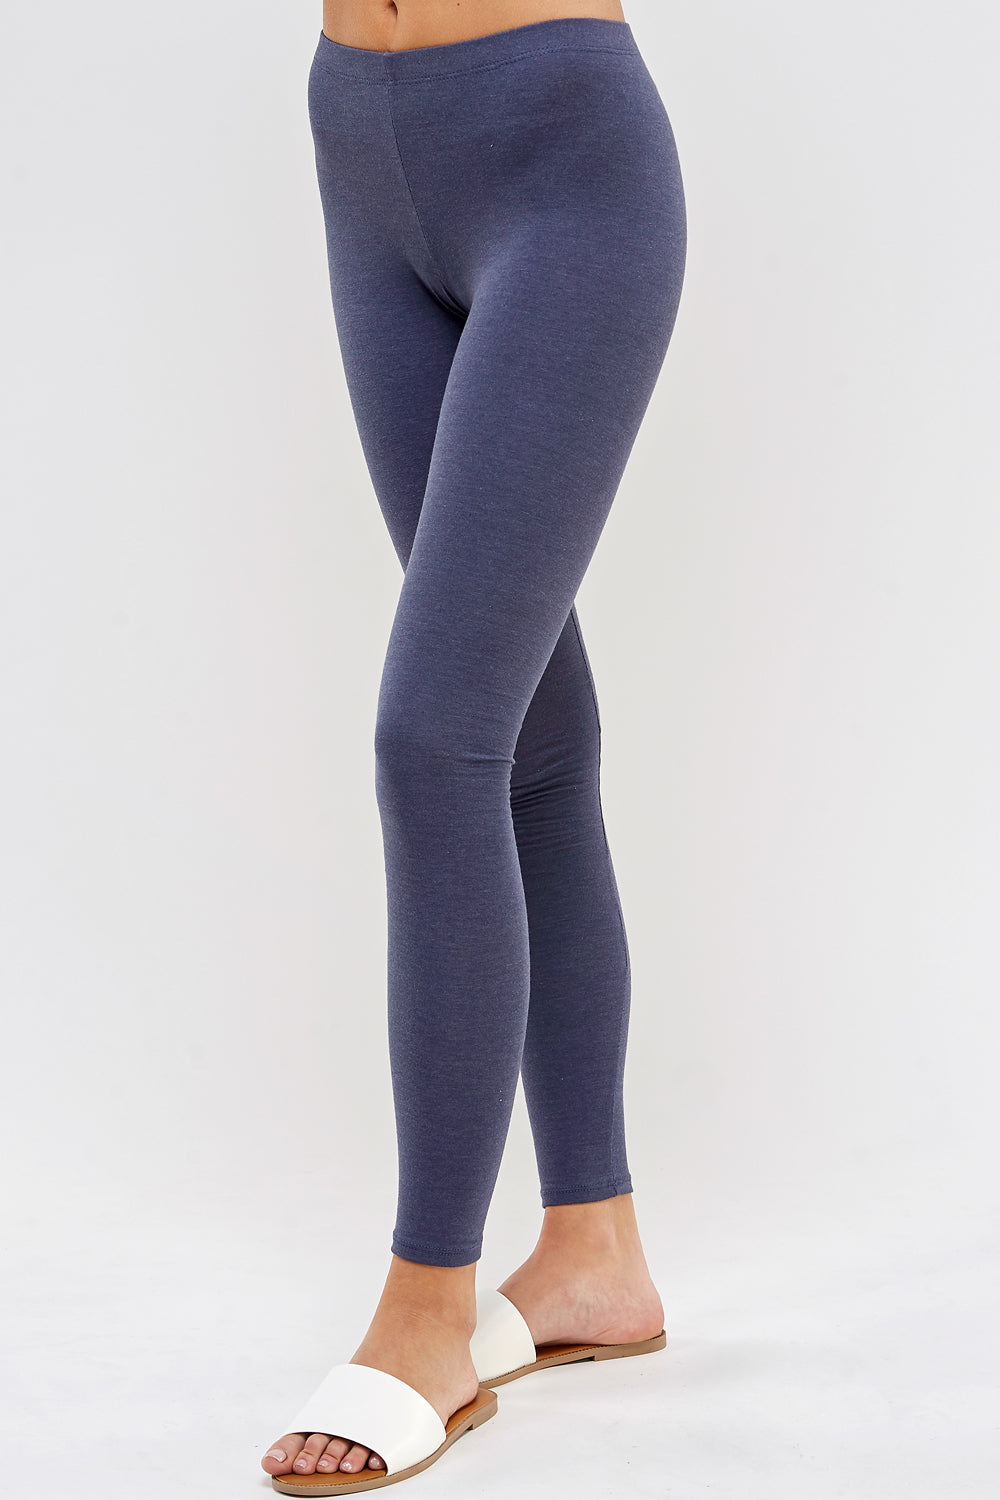 urban x apparel, urban x clothing, urbanxapparel, urbanxclothing, wholesale, women clothing, bohemian, free people, free spirit, young contemporary, fashion trend, fashion style, fashion 2019,RETAIL, Solid Basic Cotton Leggings Active wear Color Denim, URBAN X APPAREL